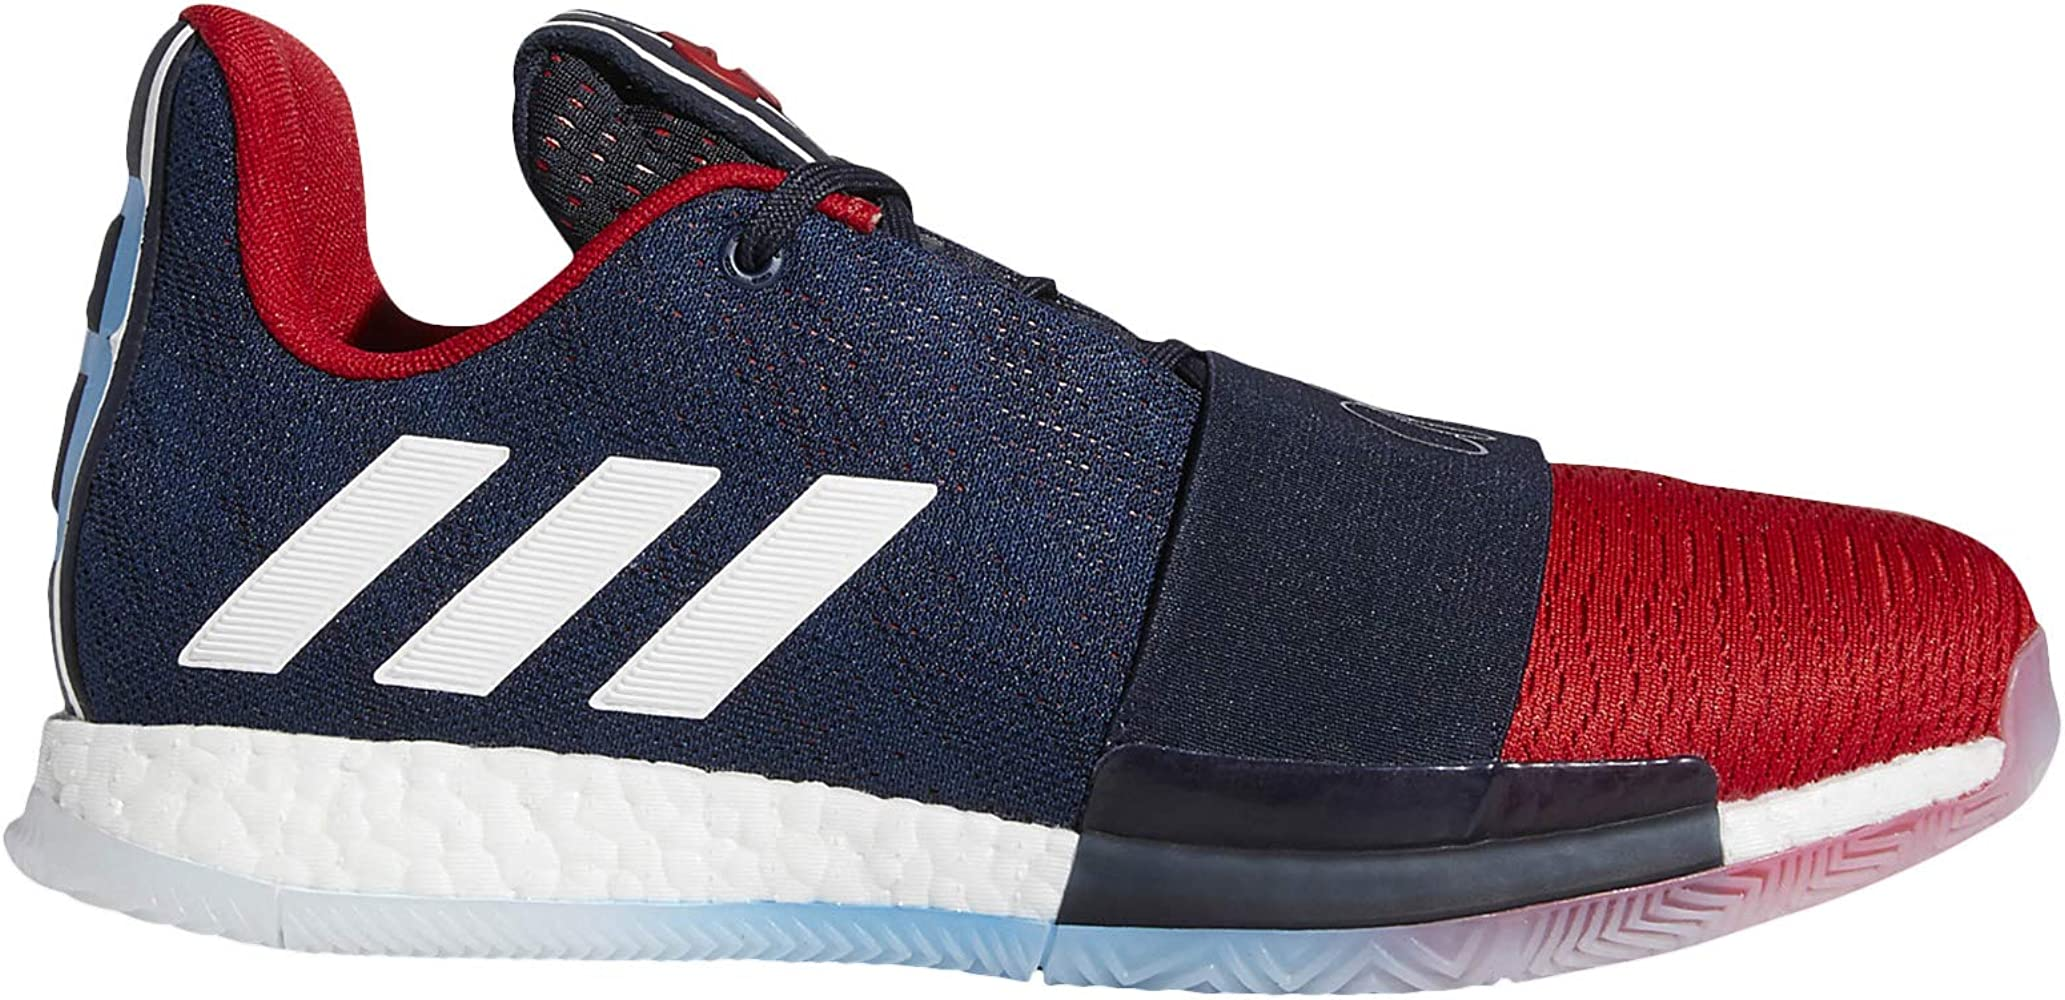 harden 2.0 shoes